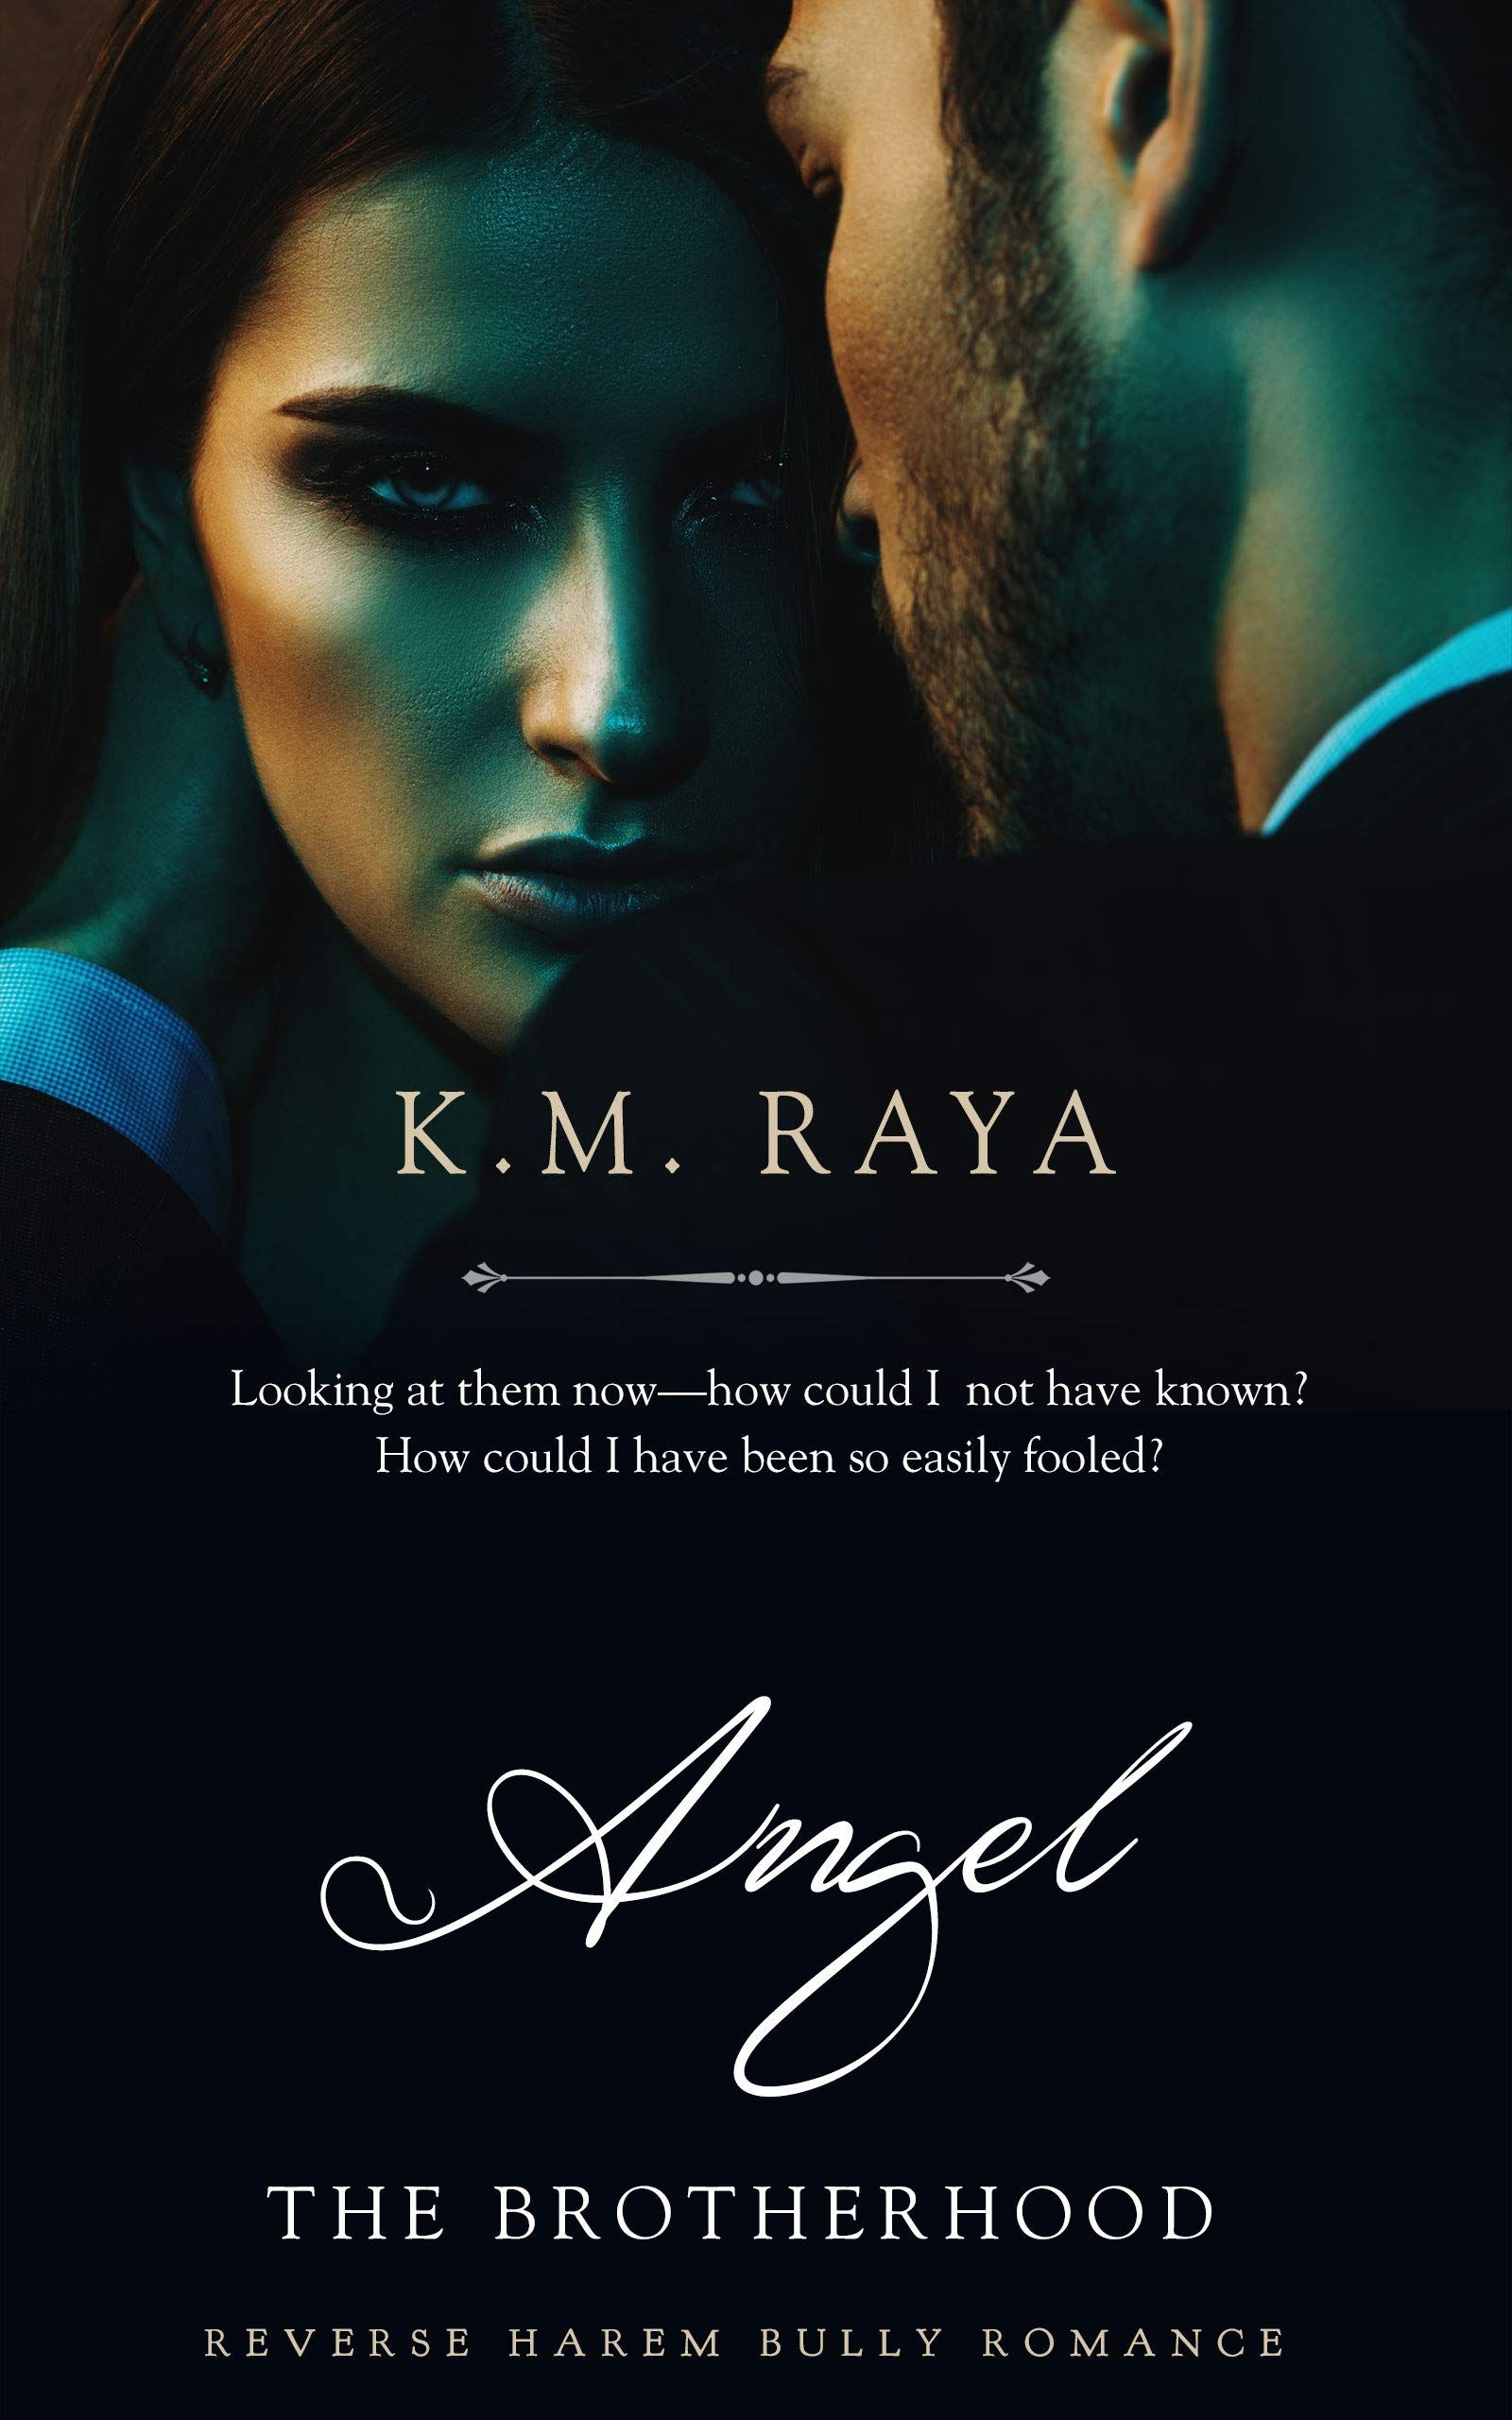 Angel A Reverse Harem Bully Romance The Brotherhood By K M Raya In 2020 Best Books To Read Books To Read Online Angel Books